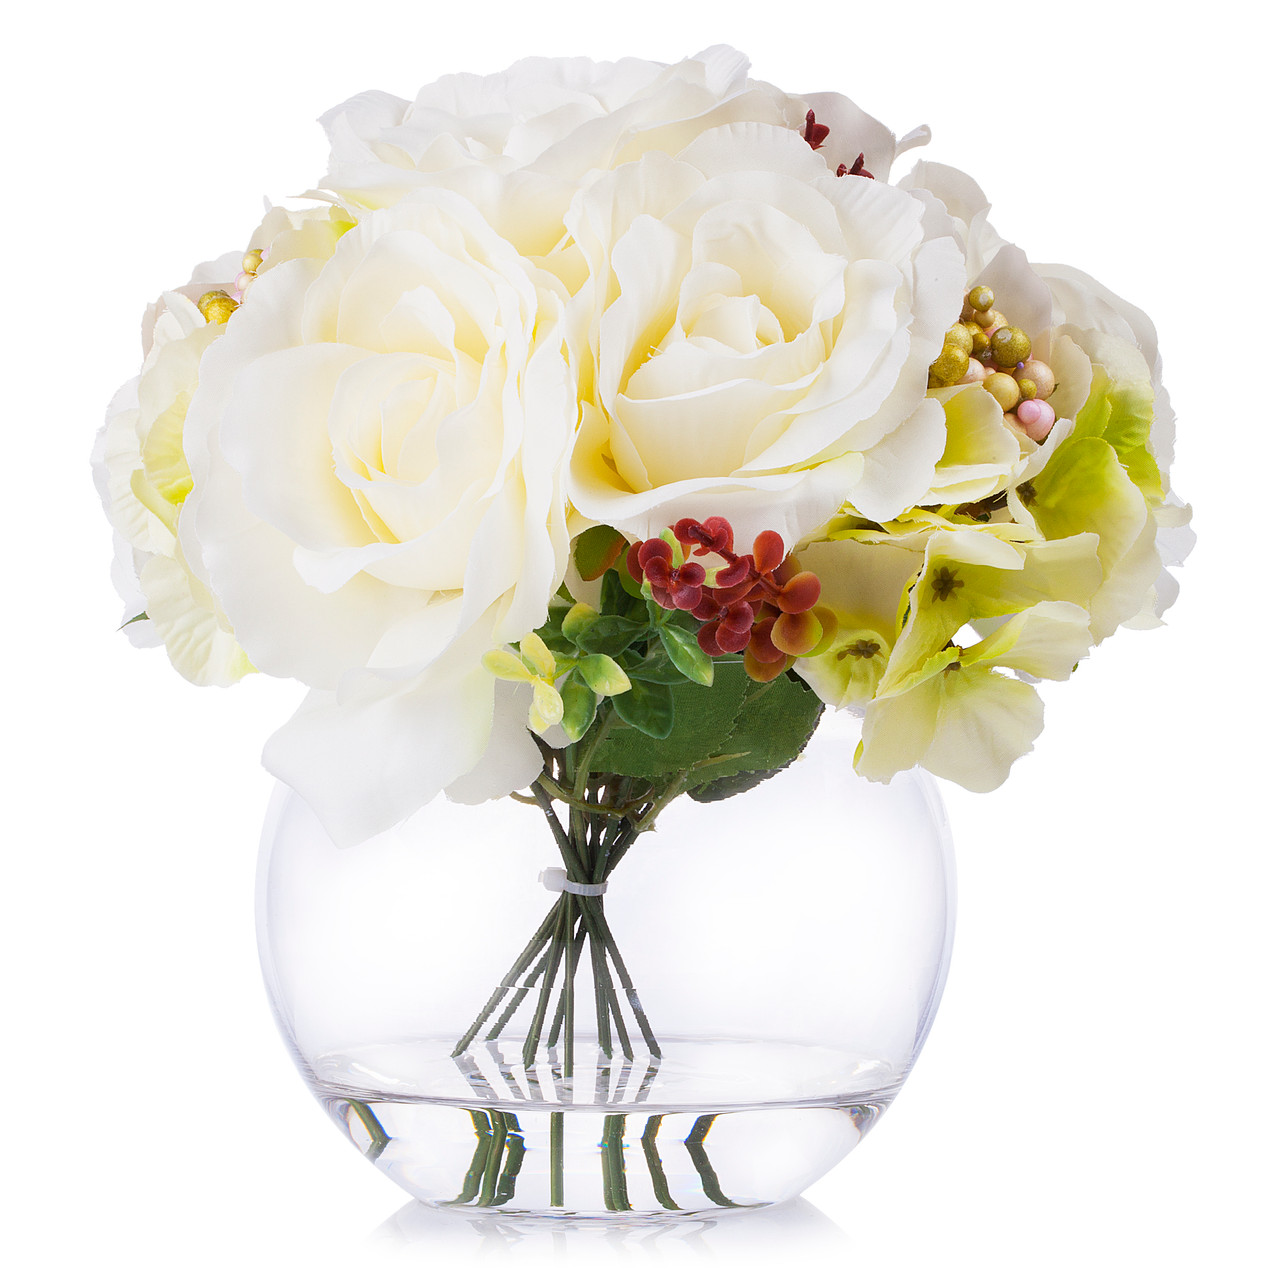 Cream Rose And Hydrangea Silk Flower Arrangement In Round Glass Vase With Faux Water Enova Home